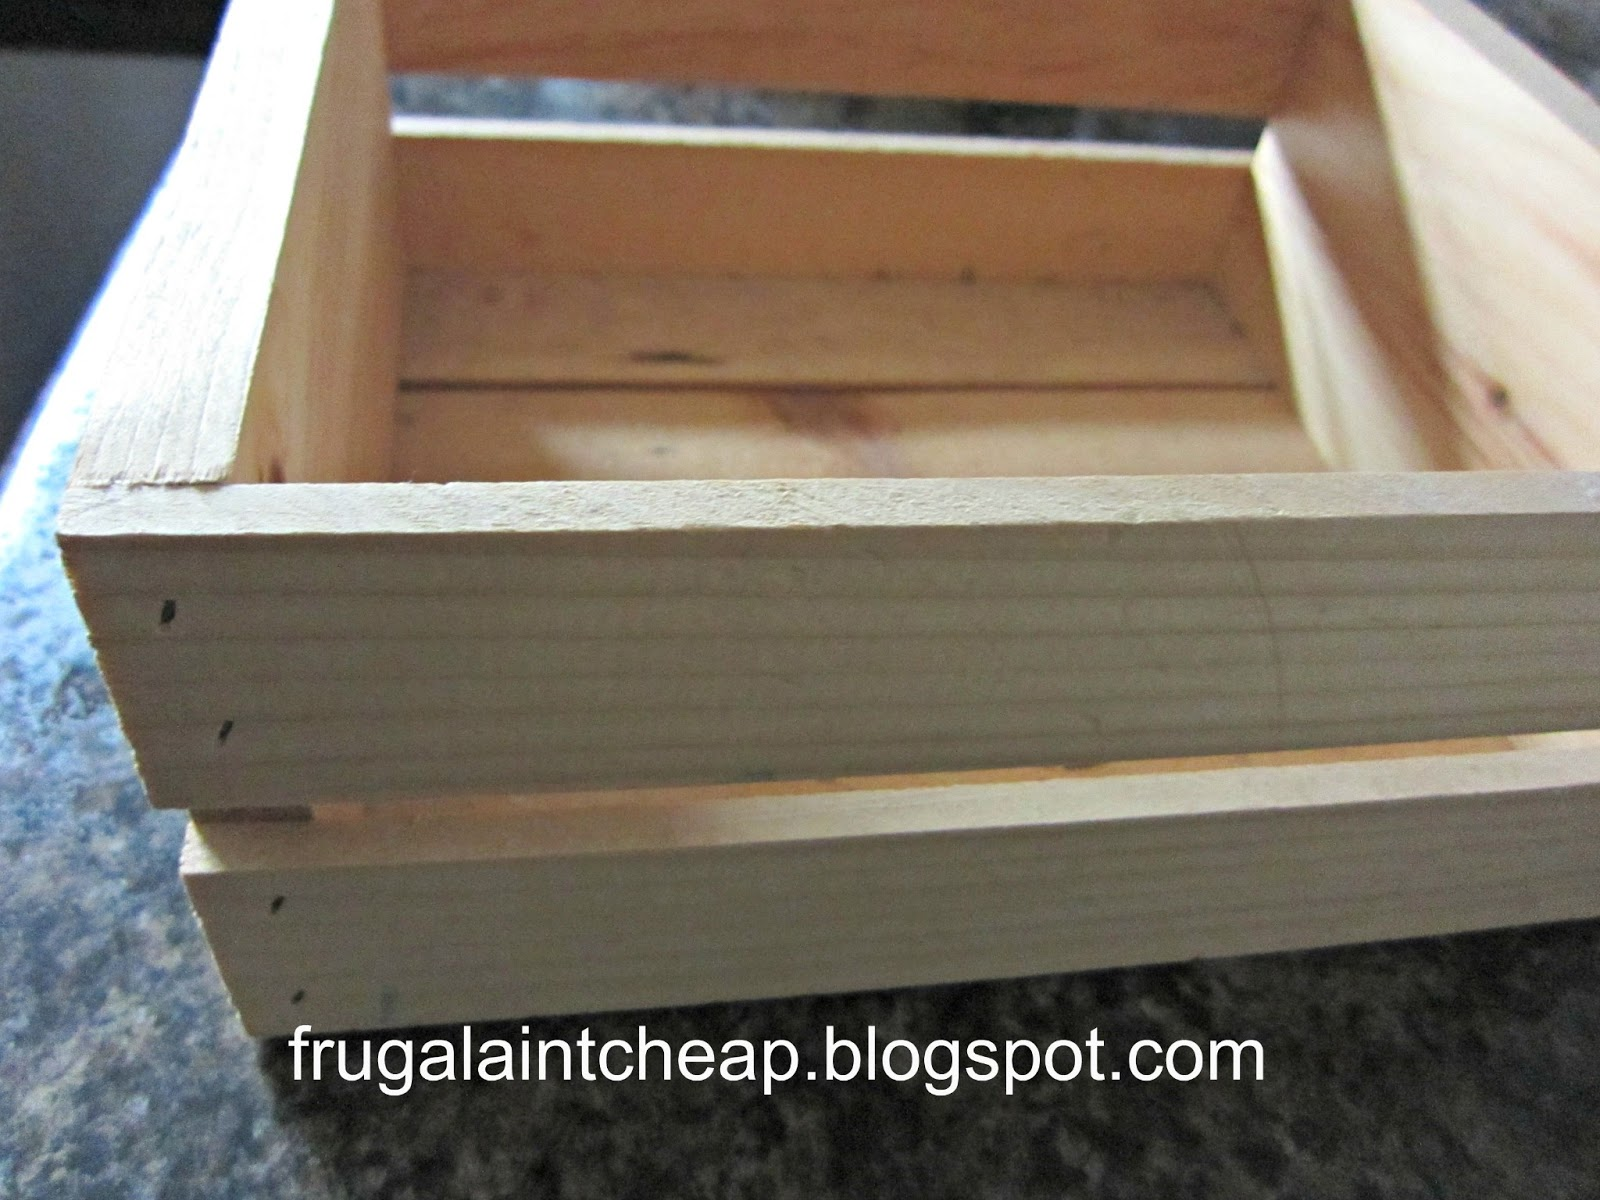 Cheap Wooden Crates Frugal Ain 39t Cheap Wood Crate